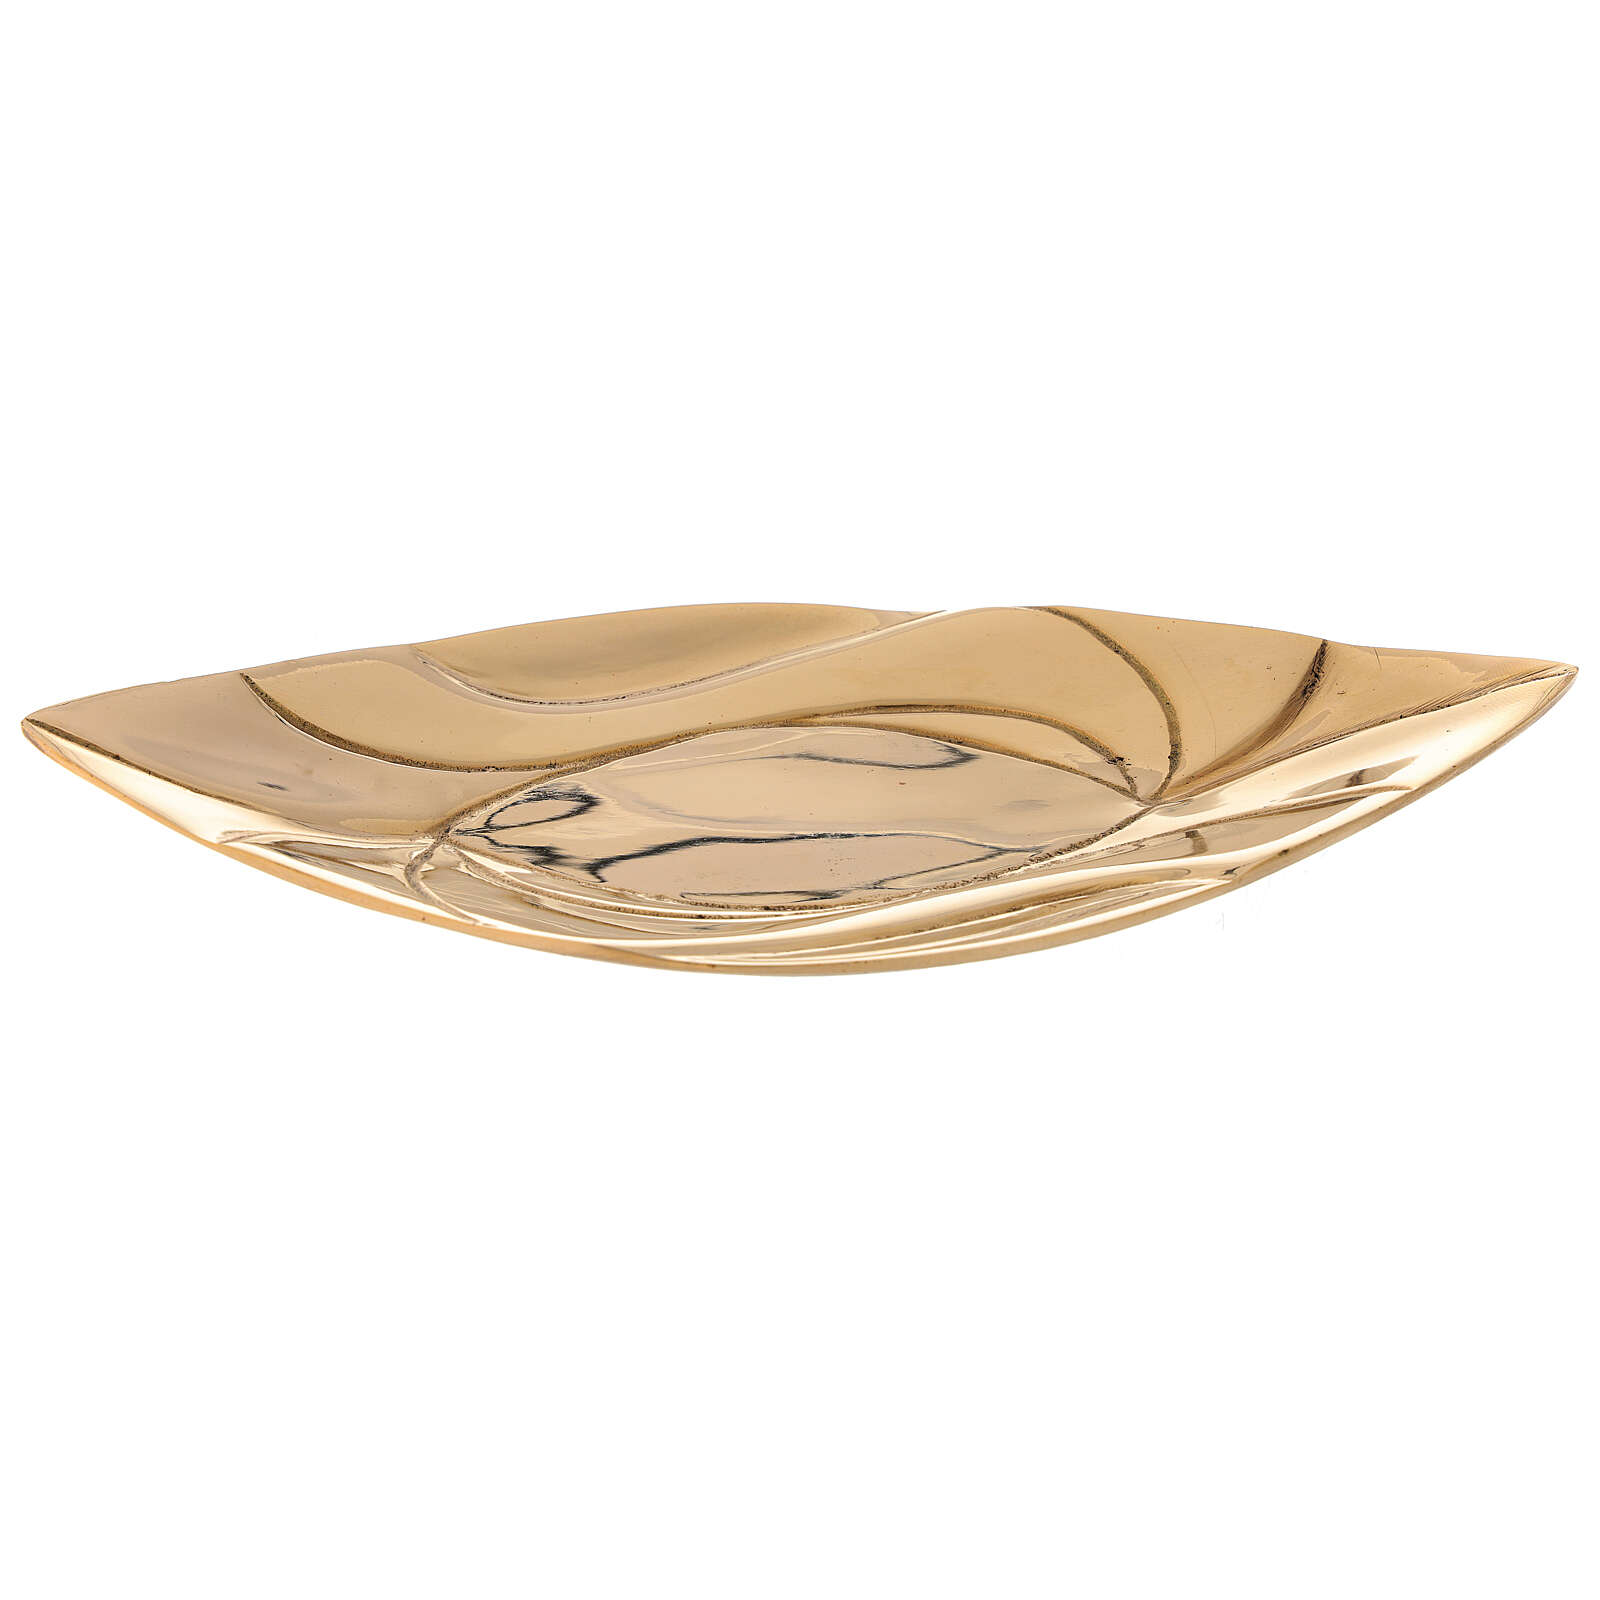 Candle holder plate shiny golden brass leaf candle 9x5.5 cm 3